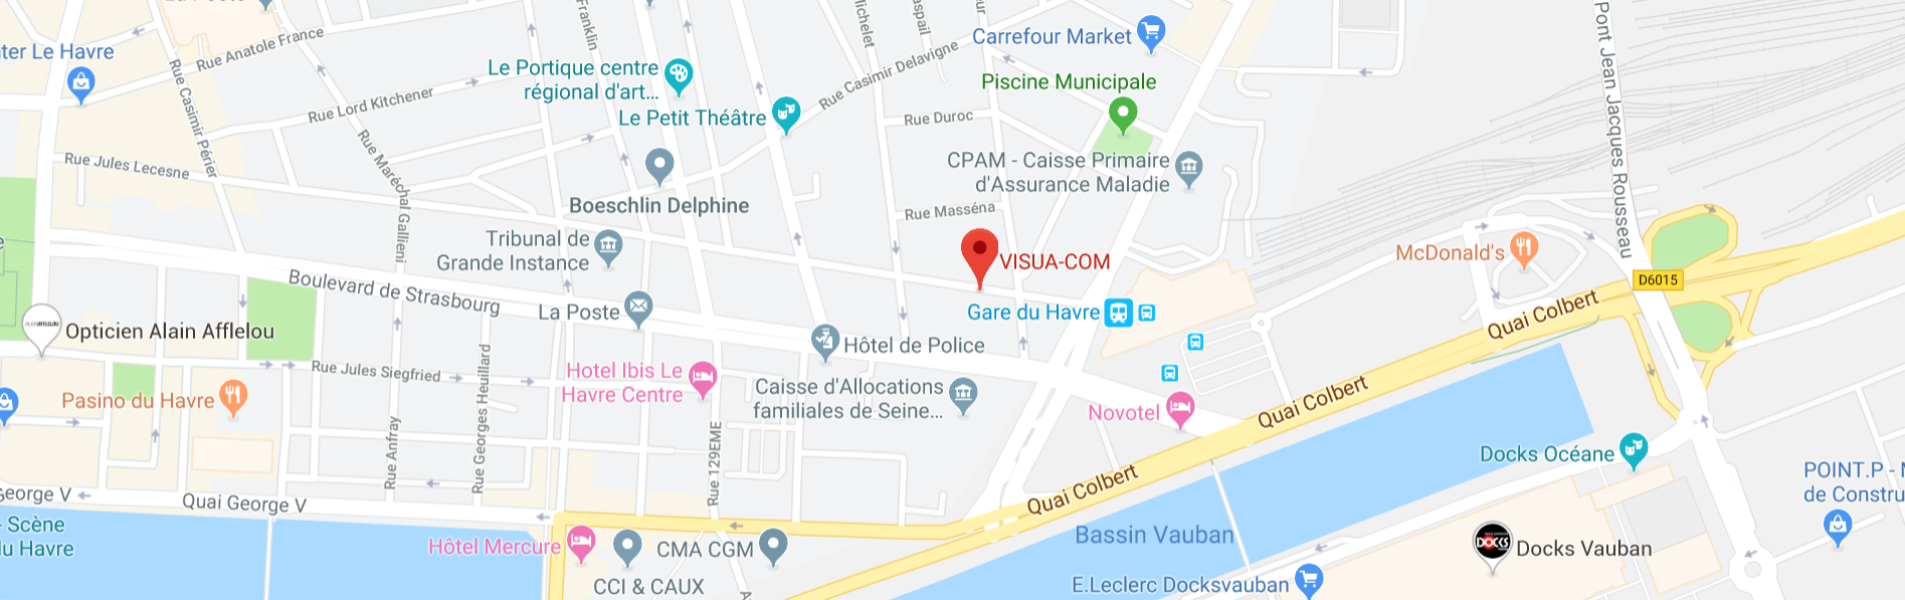 https://demo.visua-com.com/wp-content/uploads/2019/07/MapVisuaCom2-1905x600.png